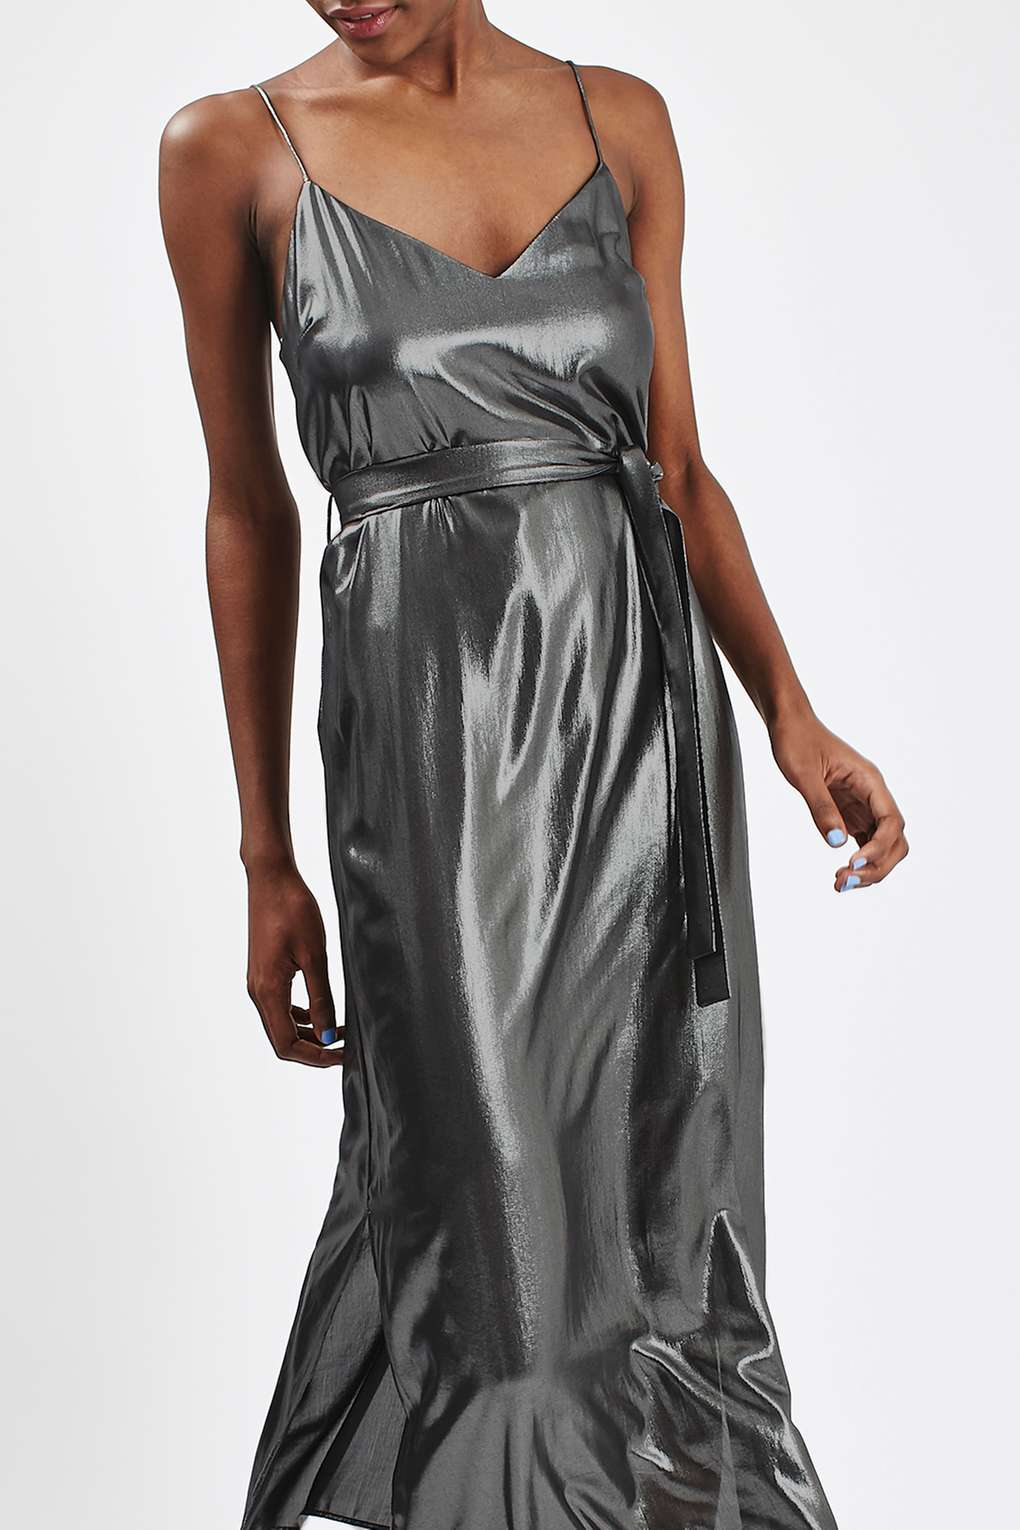 Long gray metallic dress